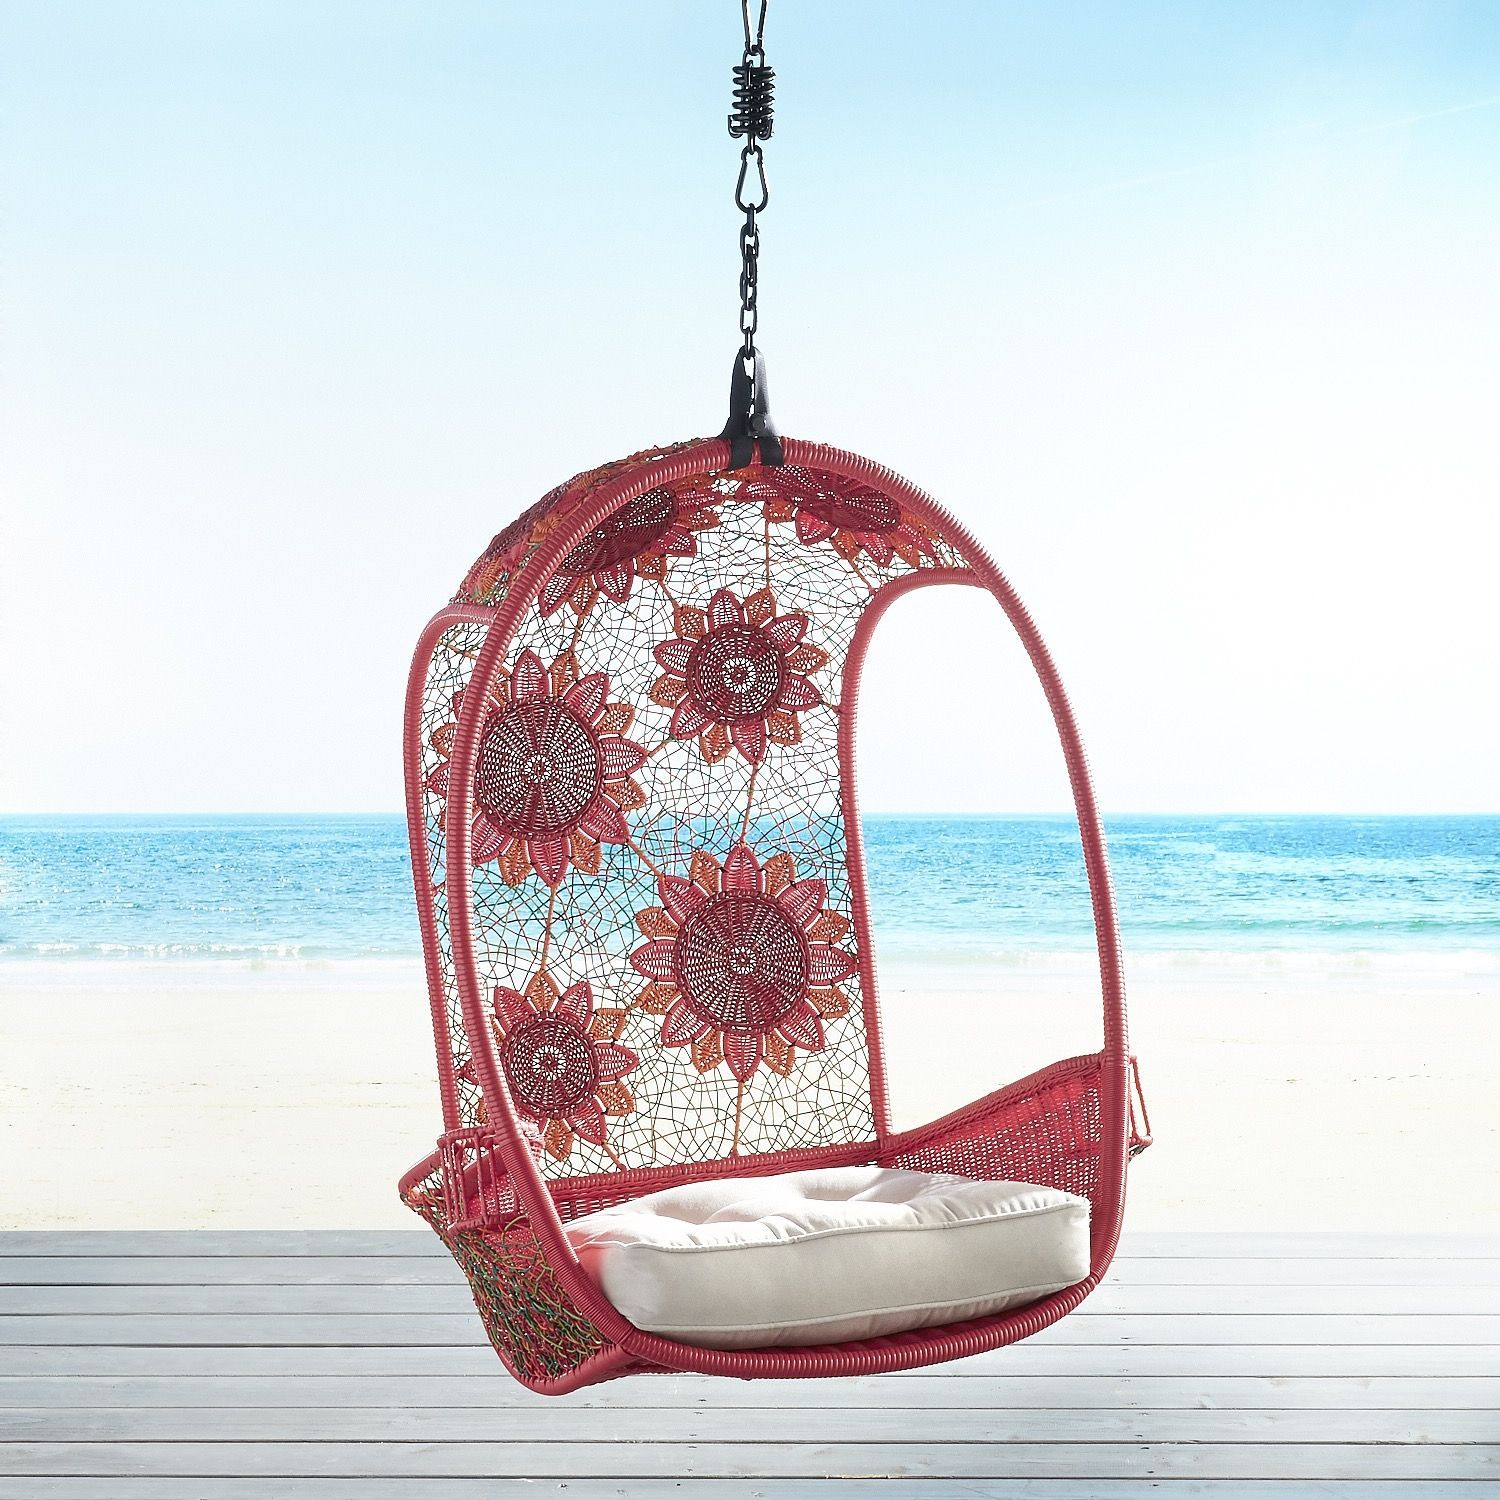 Ikea Swing Sessel Outdoor Hanging Egg Chair Ikea Ei Sitz Hängesessel Preis Single